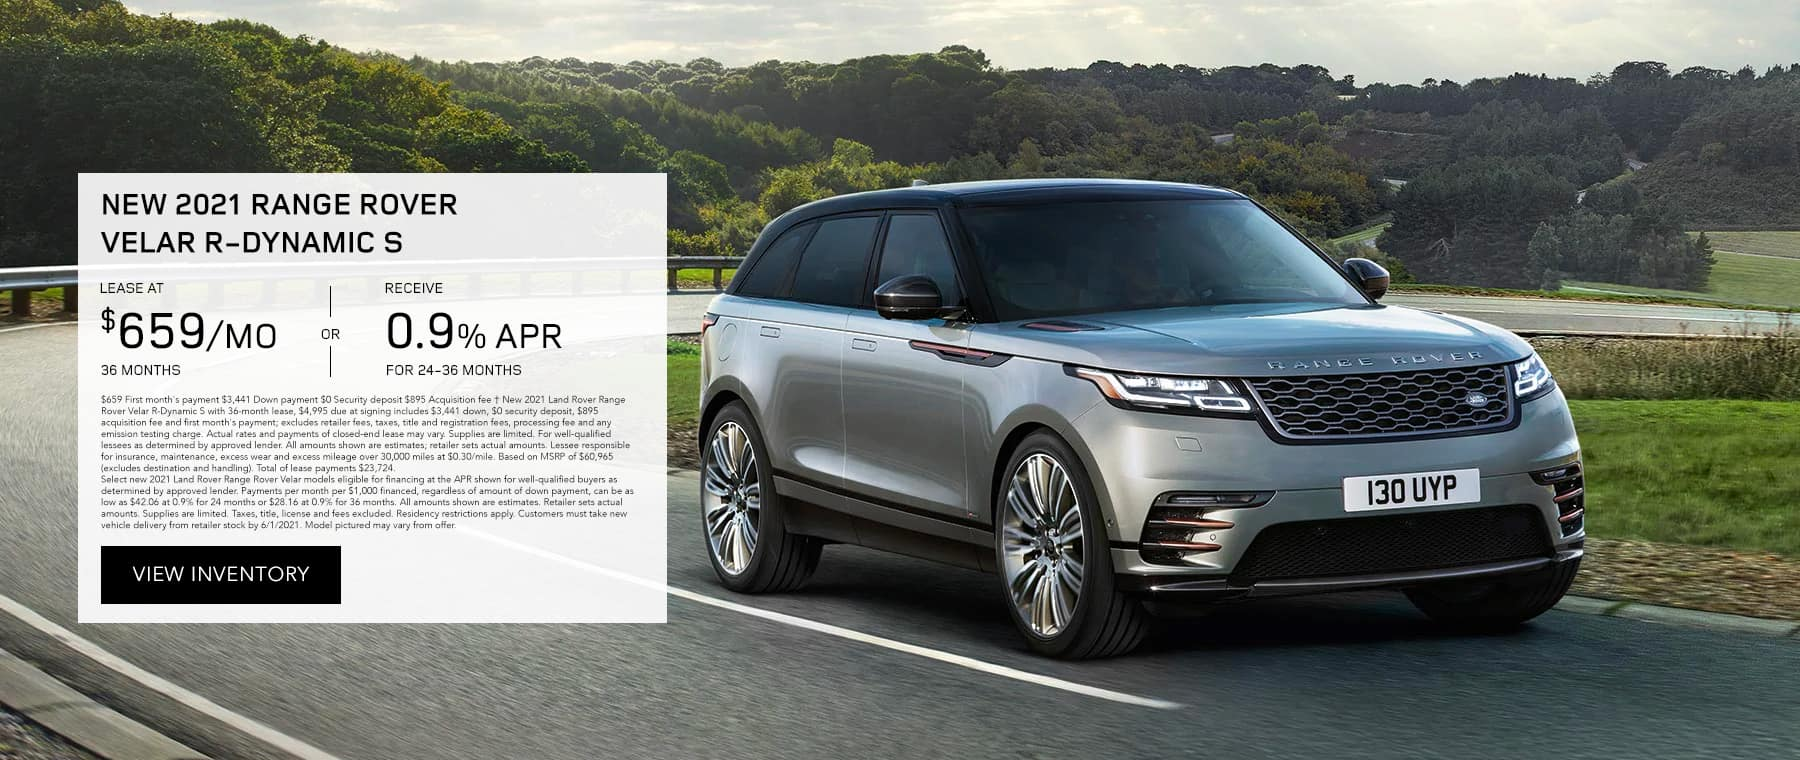 New 2021 RANGE ROVER VELAR R-DYNAMIC S, Lease for $659/mo for 36 months OR 0.9% APR for 24-36 months